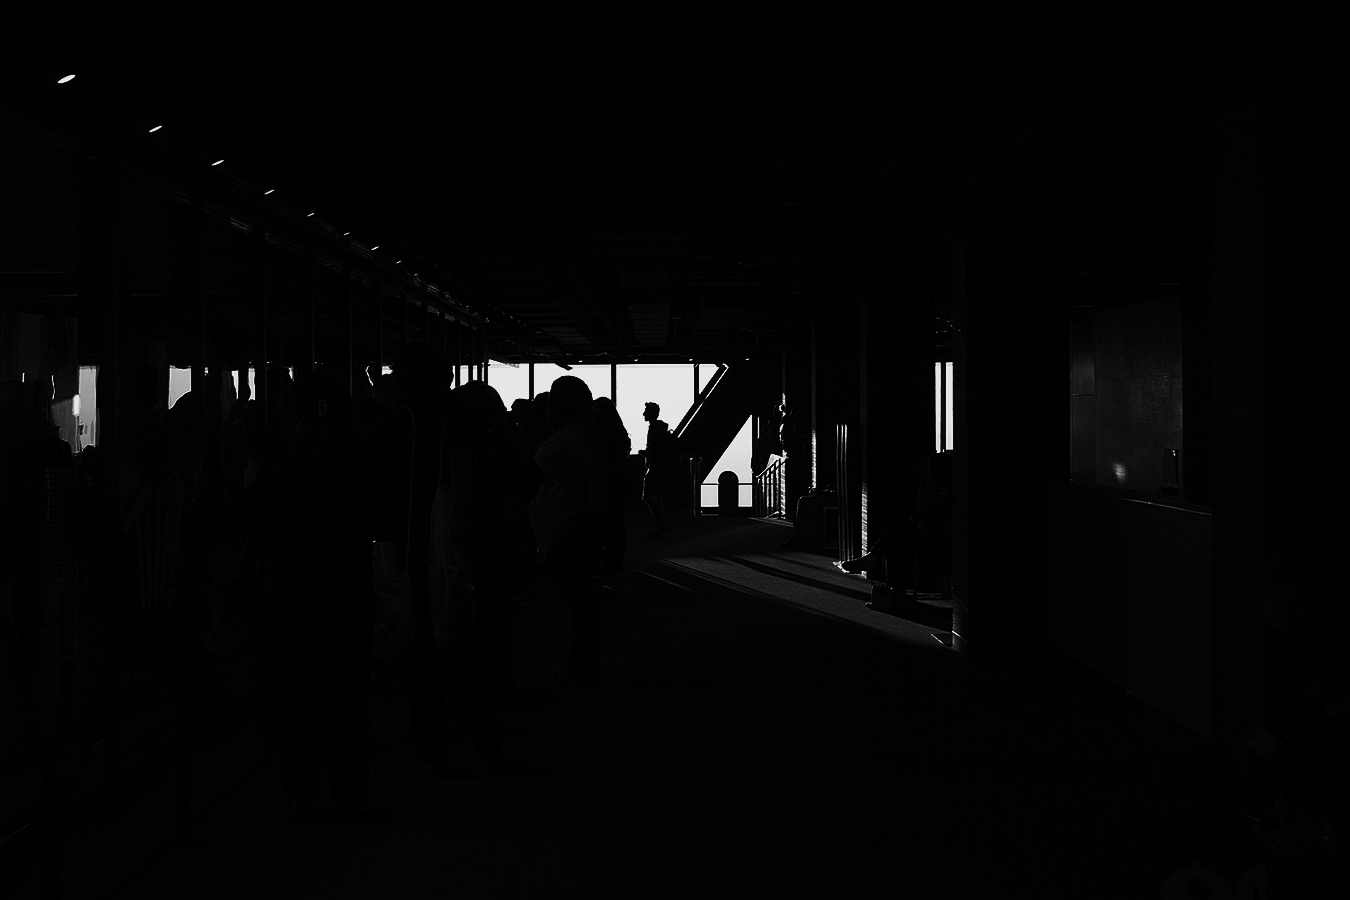 Linda_Ruan_figure_in_the_middle_black_and_white_silhouette